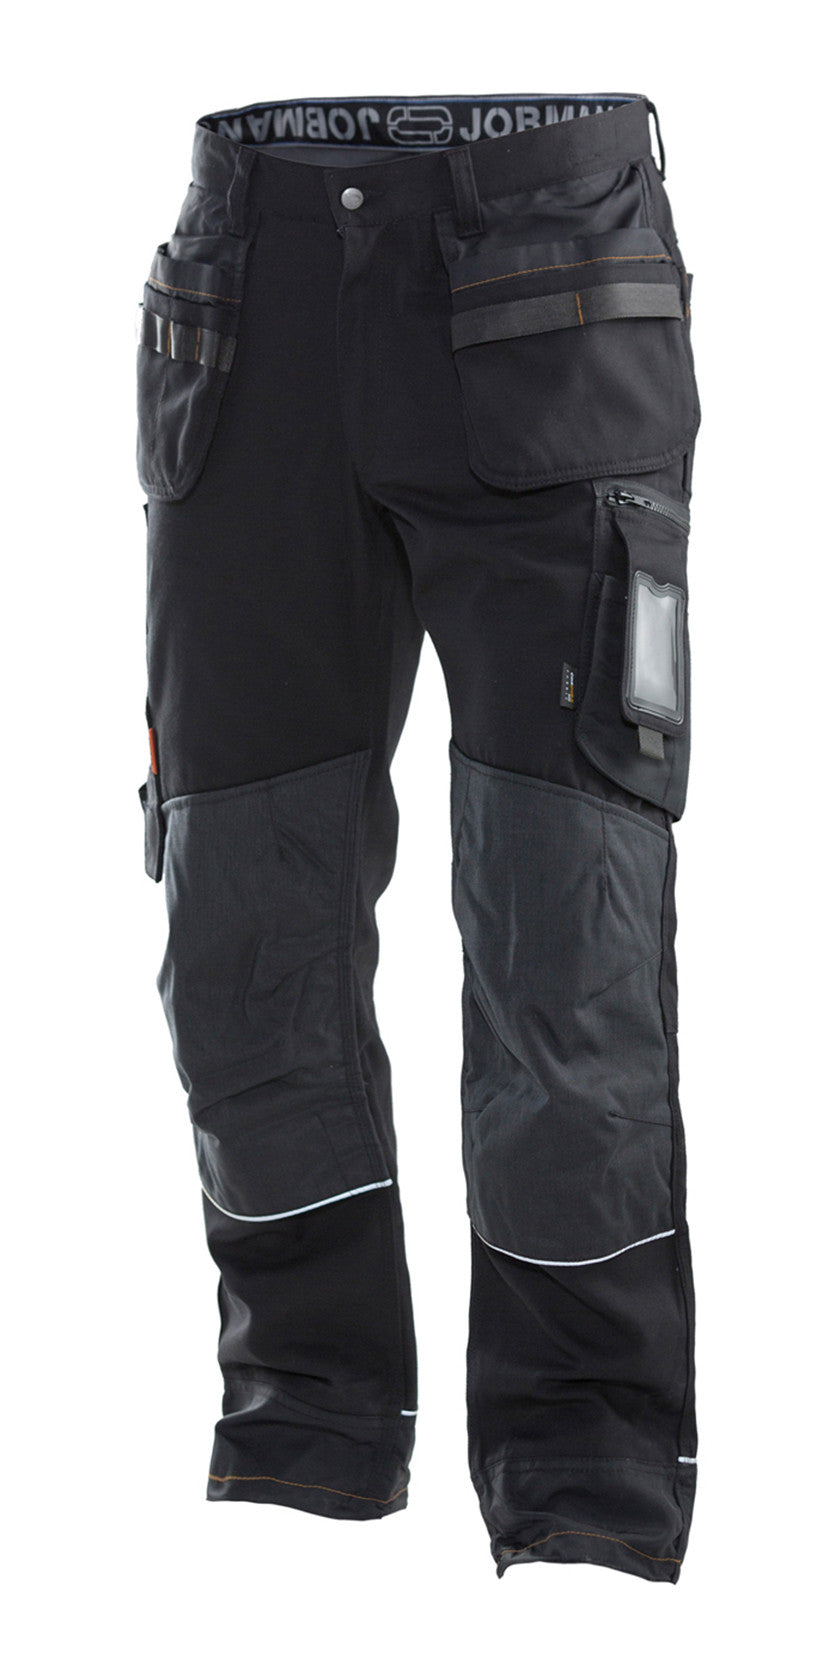 Comfort Work Trousers with Holster Pockets